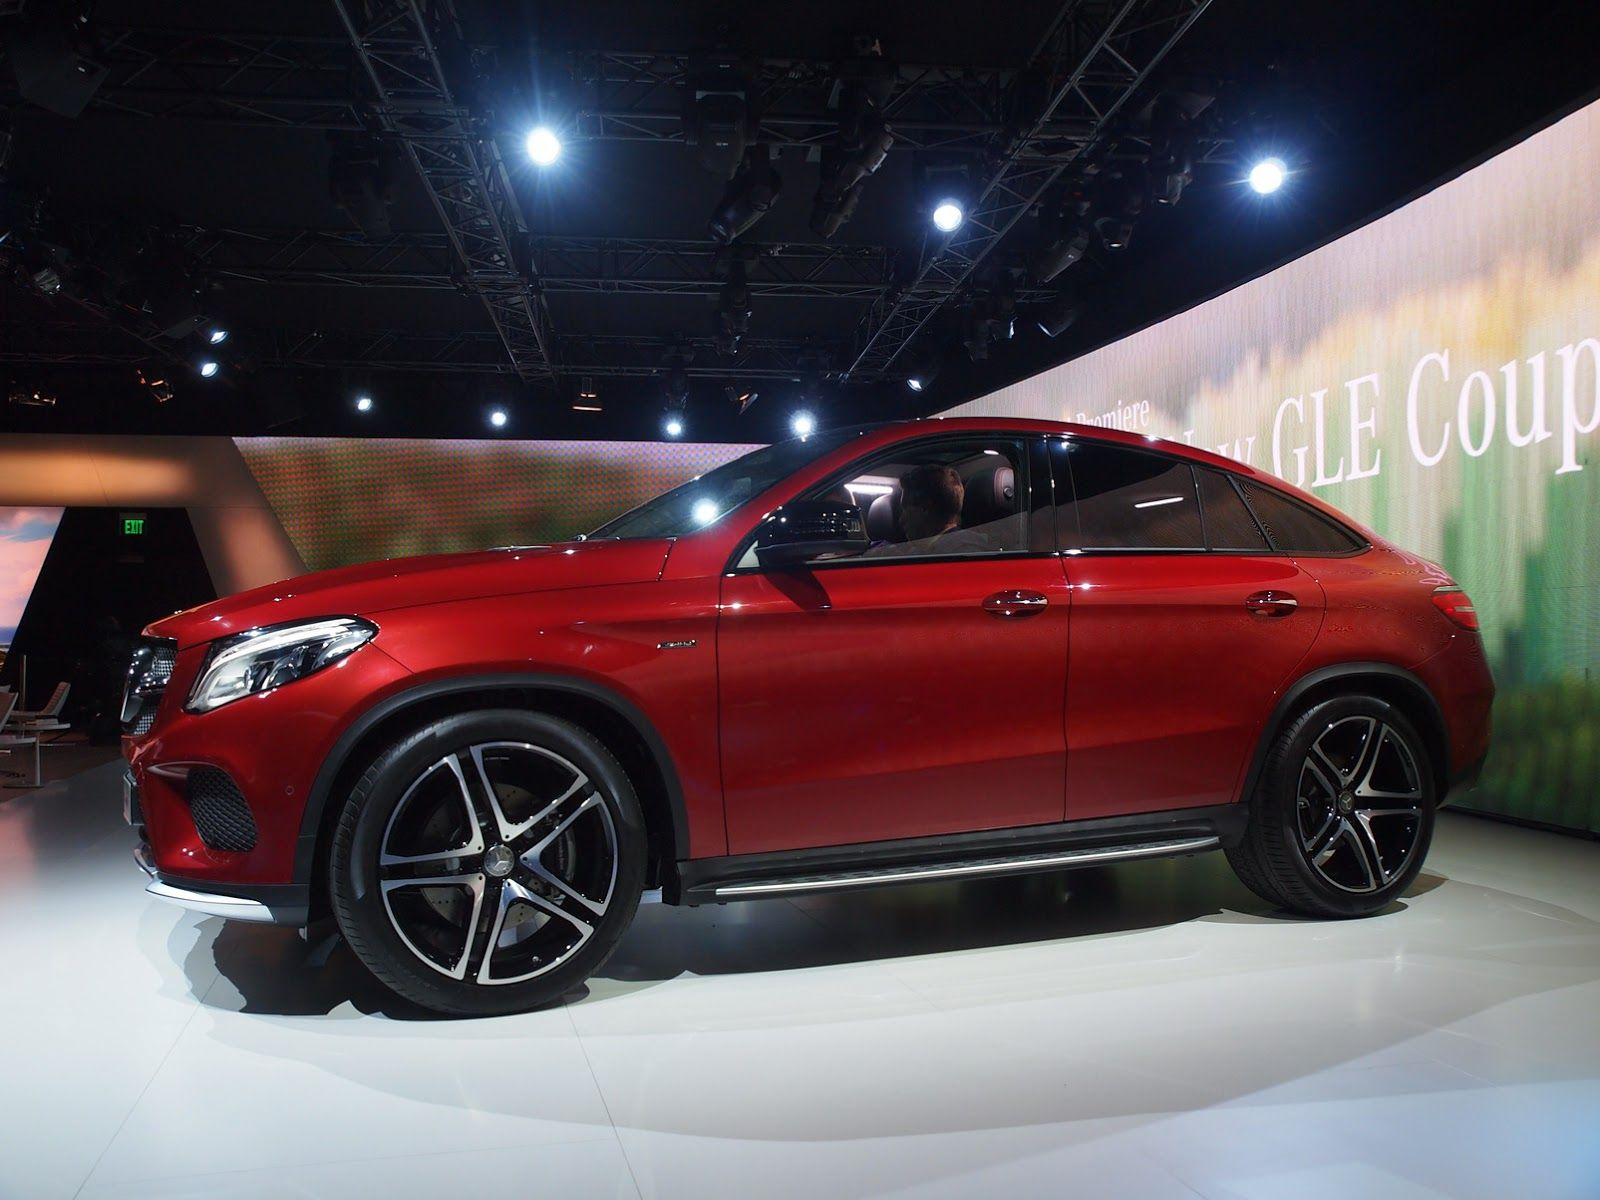 New Mercedes Gle 450 Amg Coupe Lands In Detroit With Twin Turbo V6